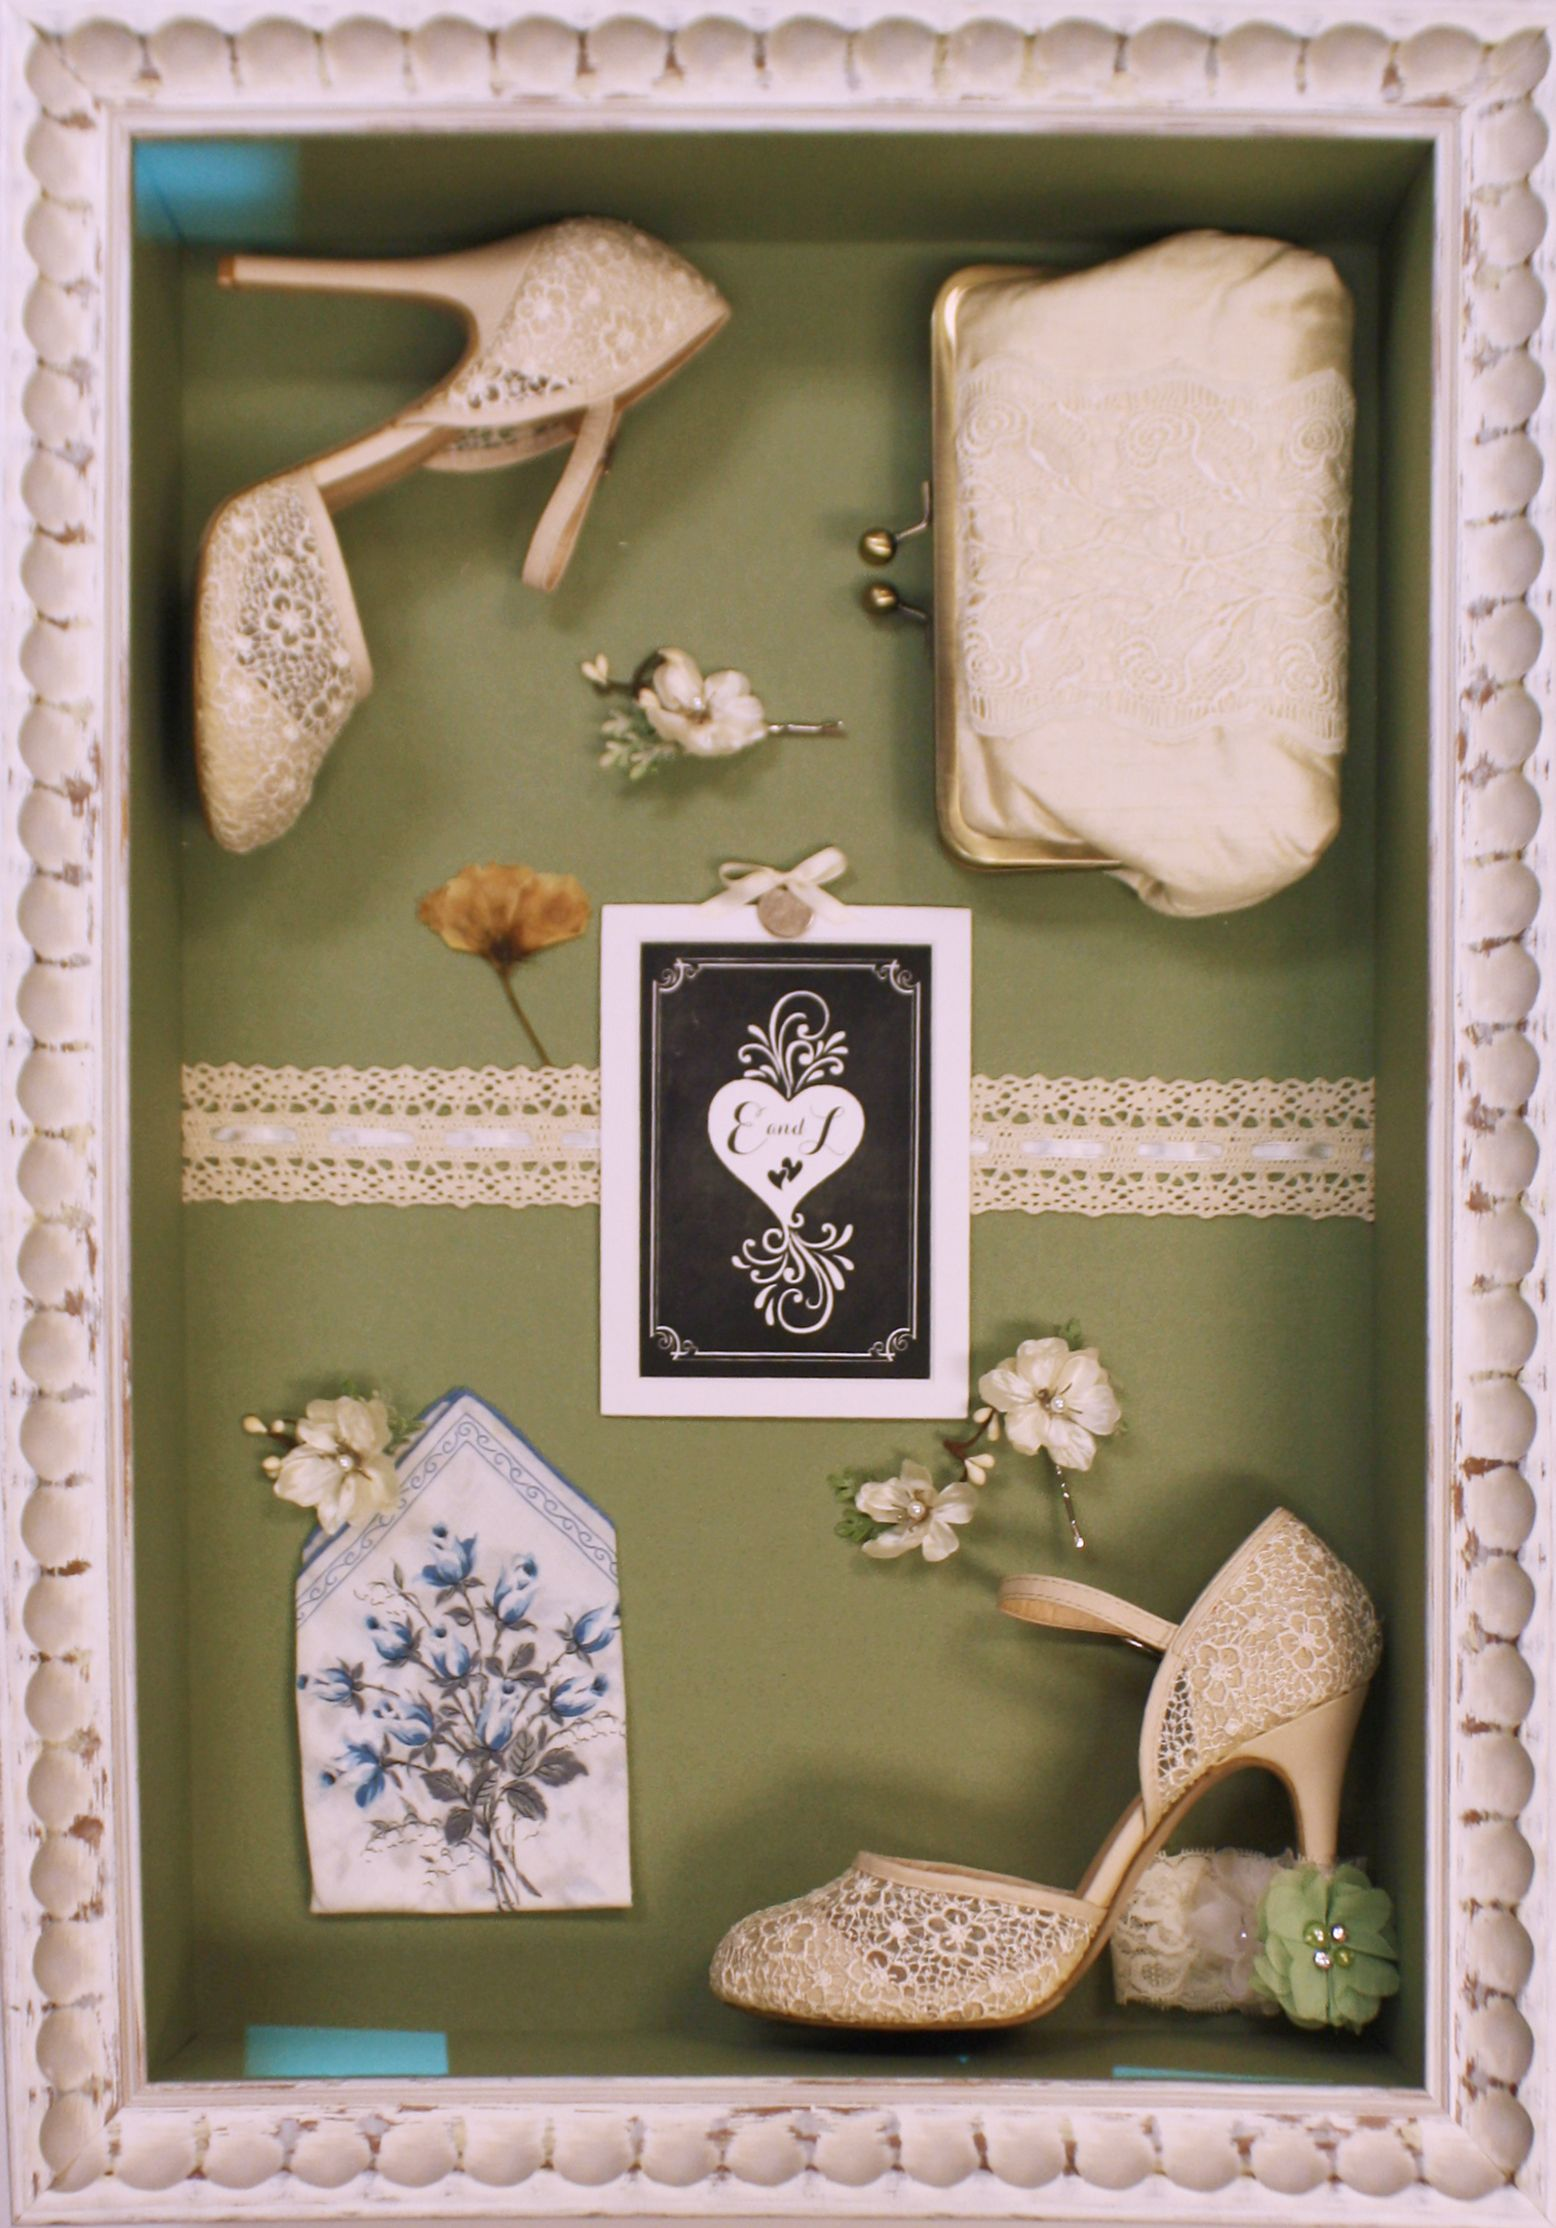 Wedding Collage With Shoes And Other Memorabilia In 2020 Wedding Collage Wedding Dress Frame Wedding Mementos